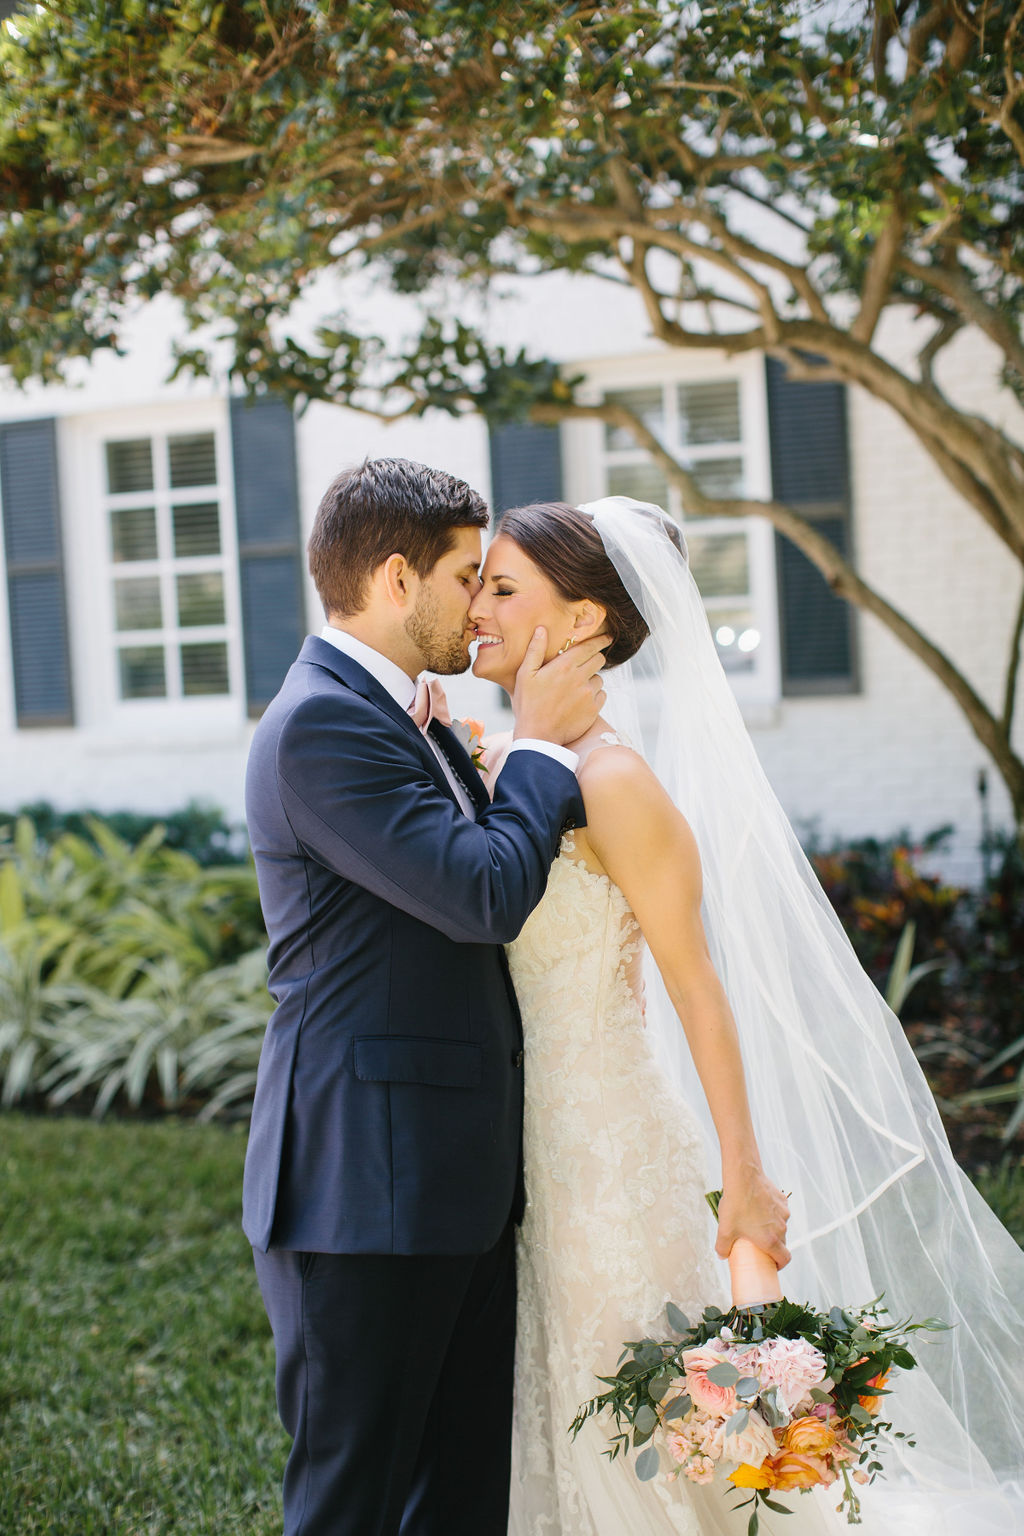 Romantic Bride and Groom Portrait, Bride Wearing Lace Watters Wedding Dress Holding Whimsical Blush Pink and Orange Roses with Greenery Floral Bouquet, Groom in Blue Suit | Tampa Bay Wedding Hair and Makeup Femme Akoi Beauty Studio | St. Pete Wedding Florist Bruce Wayne Florals